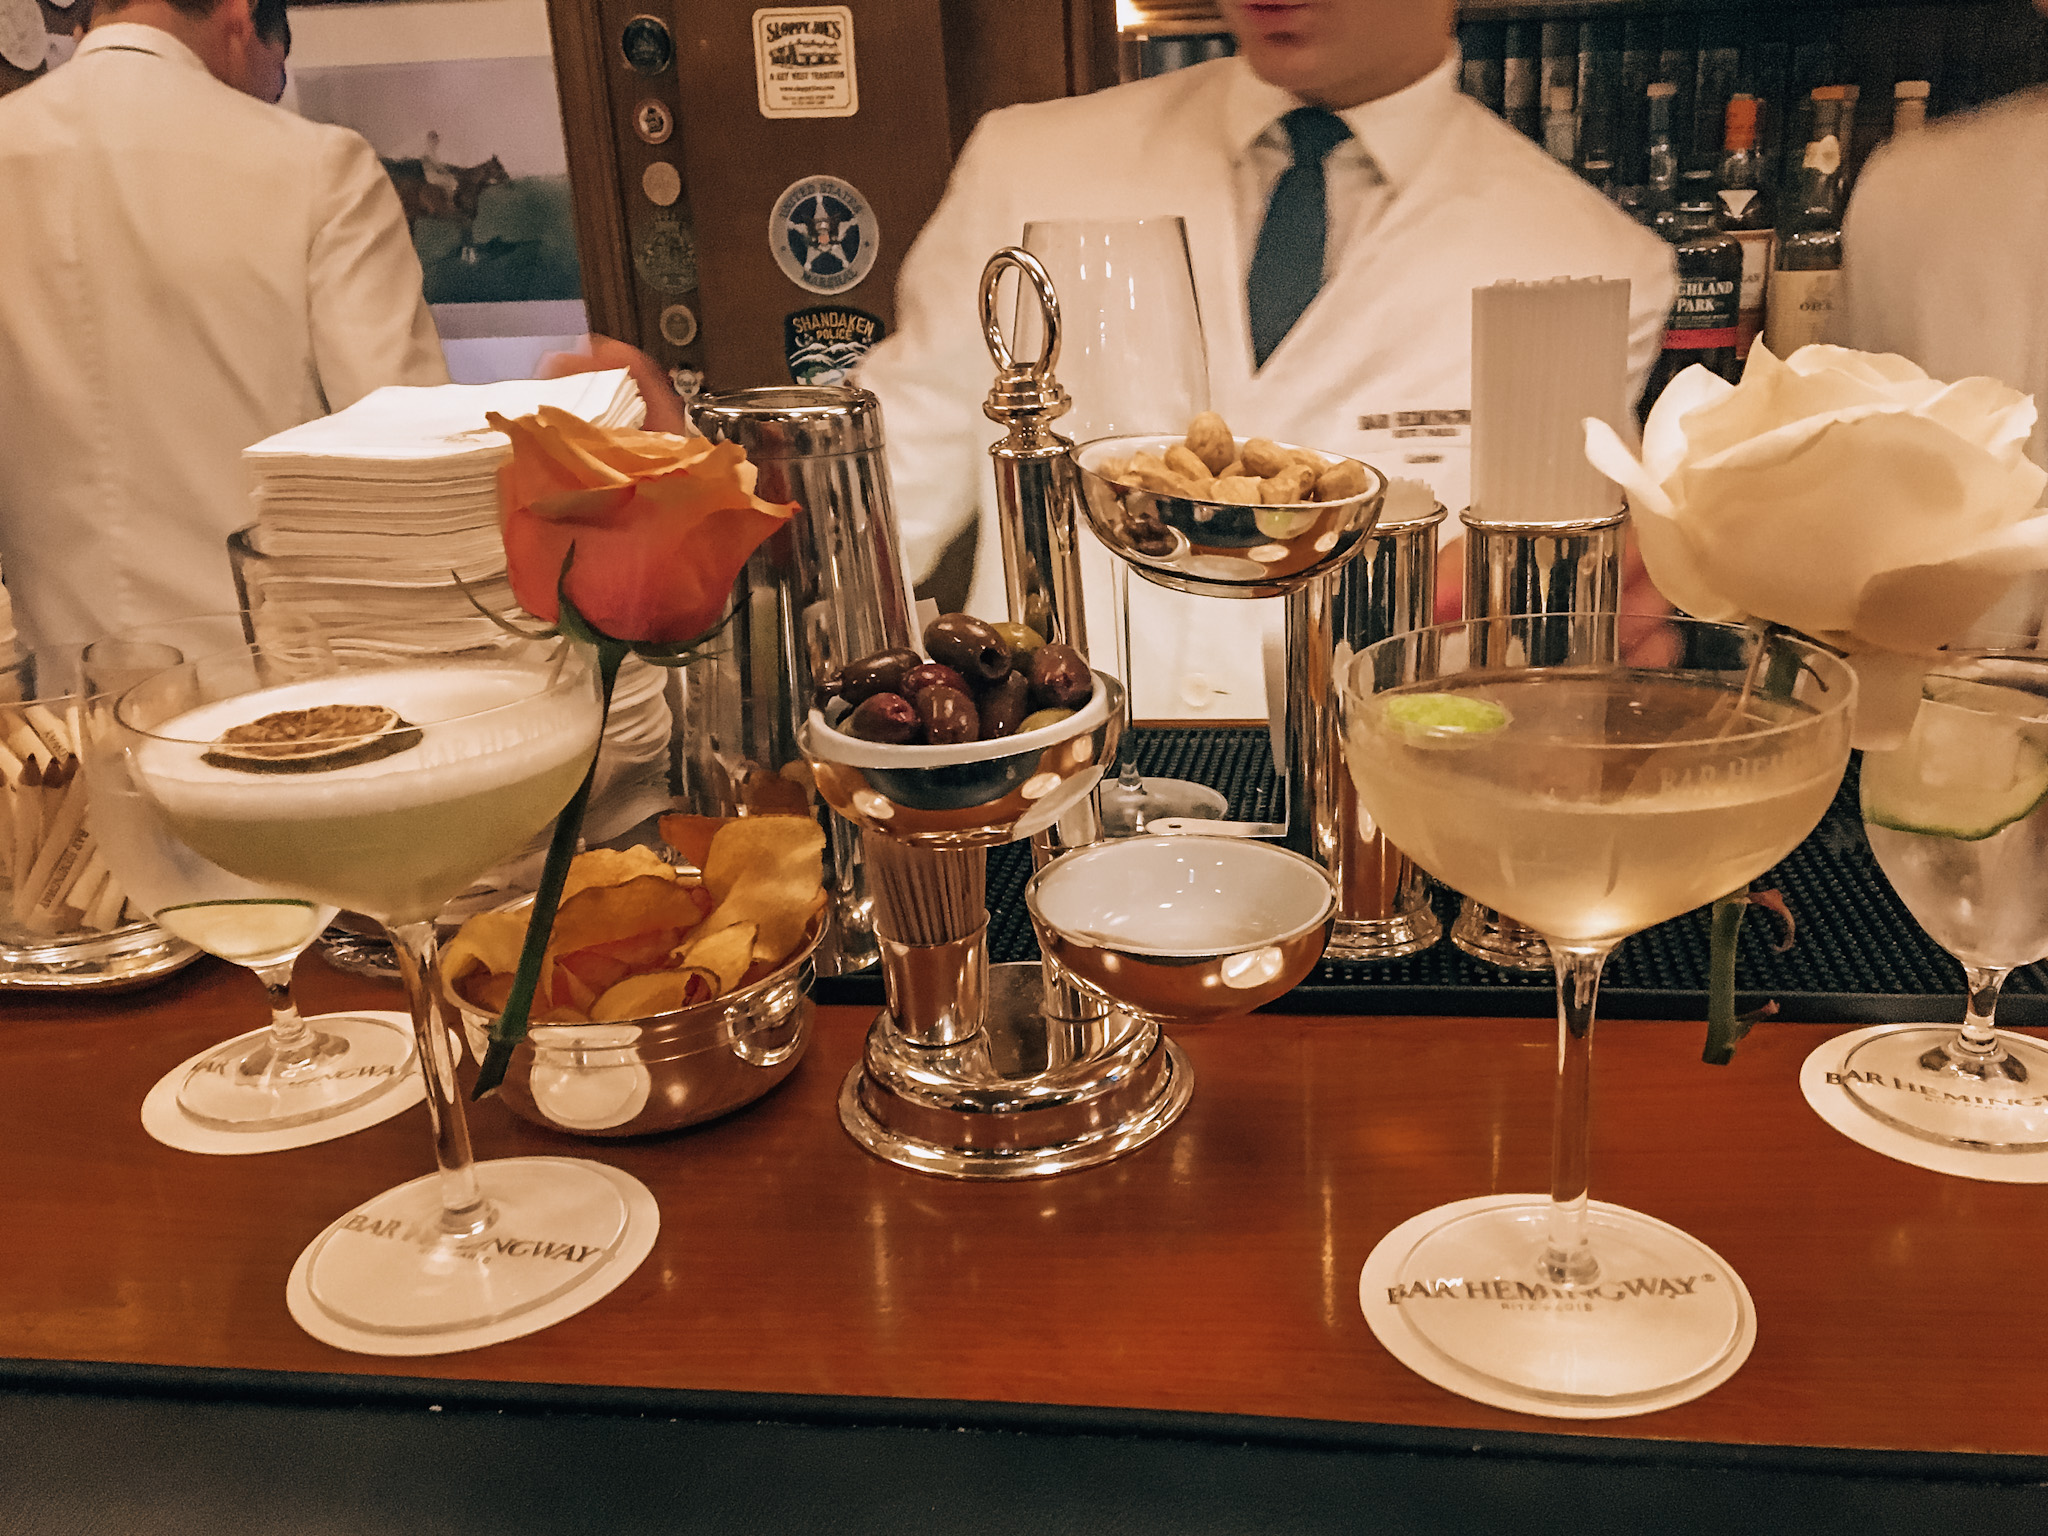 30-euro cocktails at Bar Hemingway in the Ritz Hotel, a historic spot for Paris nightlife hotel